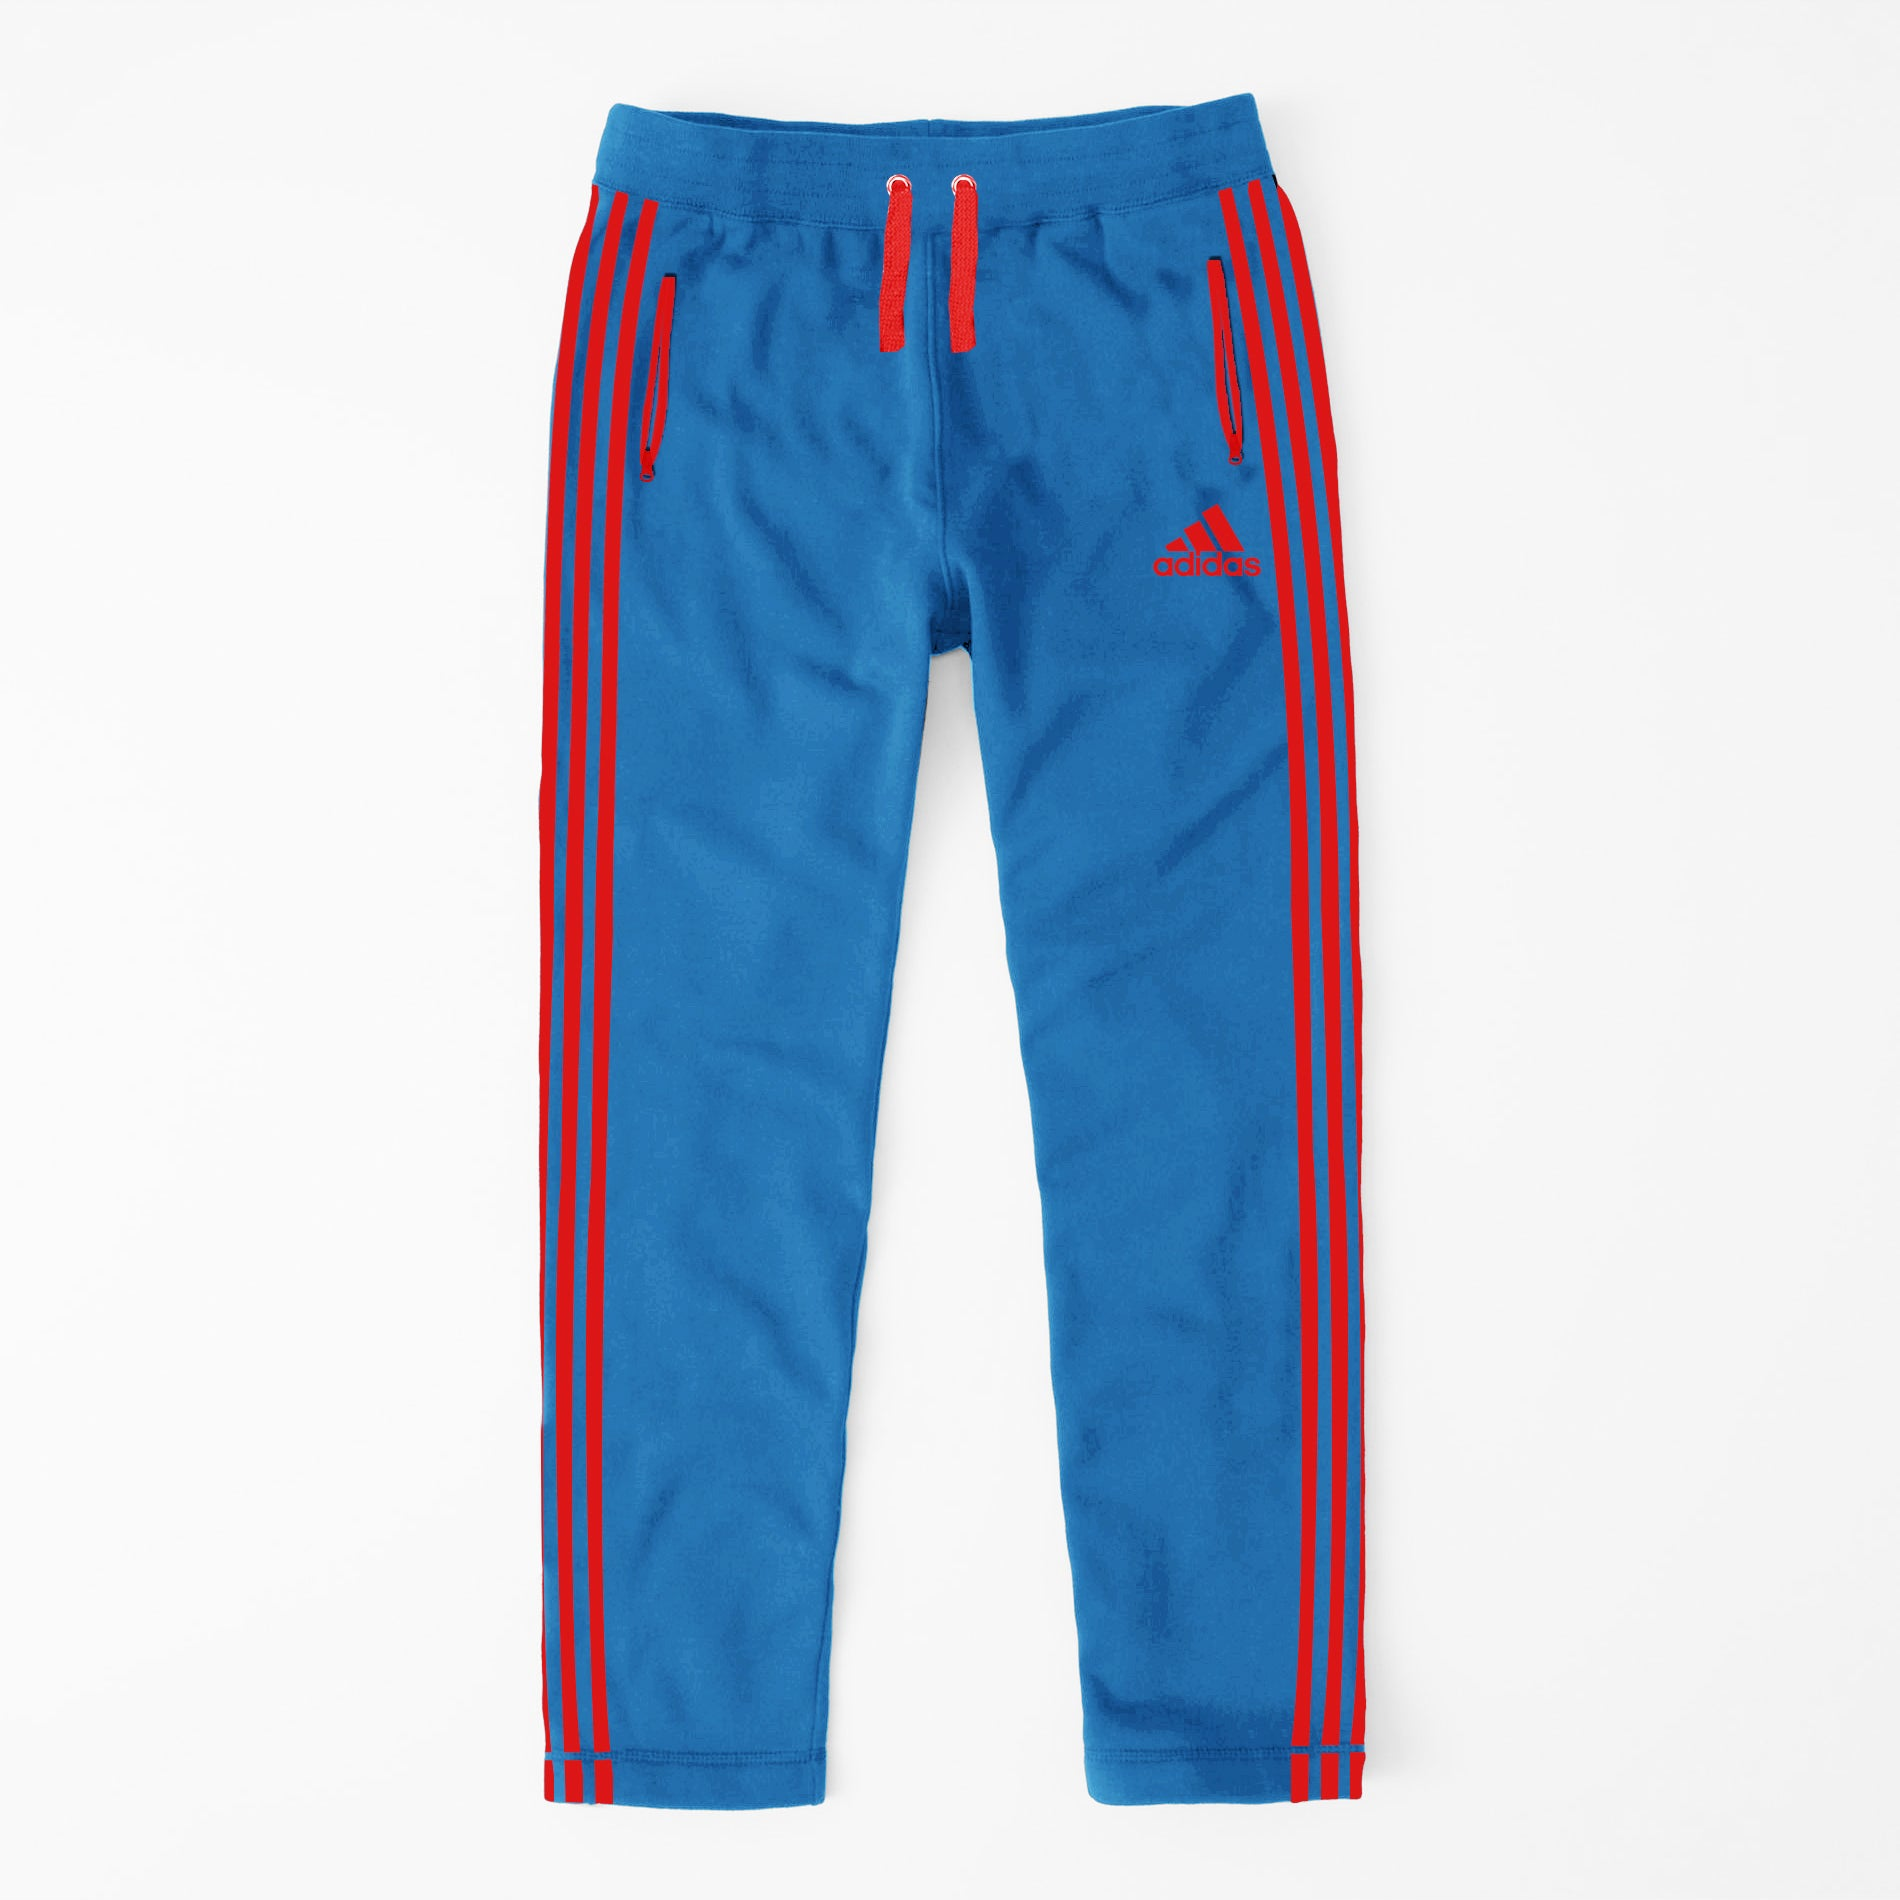 Adidas Single Jersey Regular Fit Trouser For Men-Blue With Red Stripes-NA9363